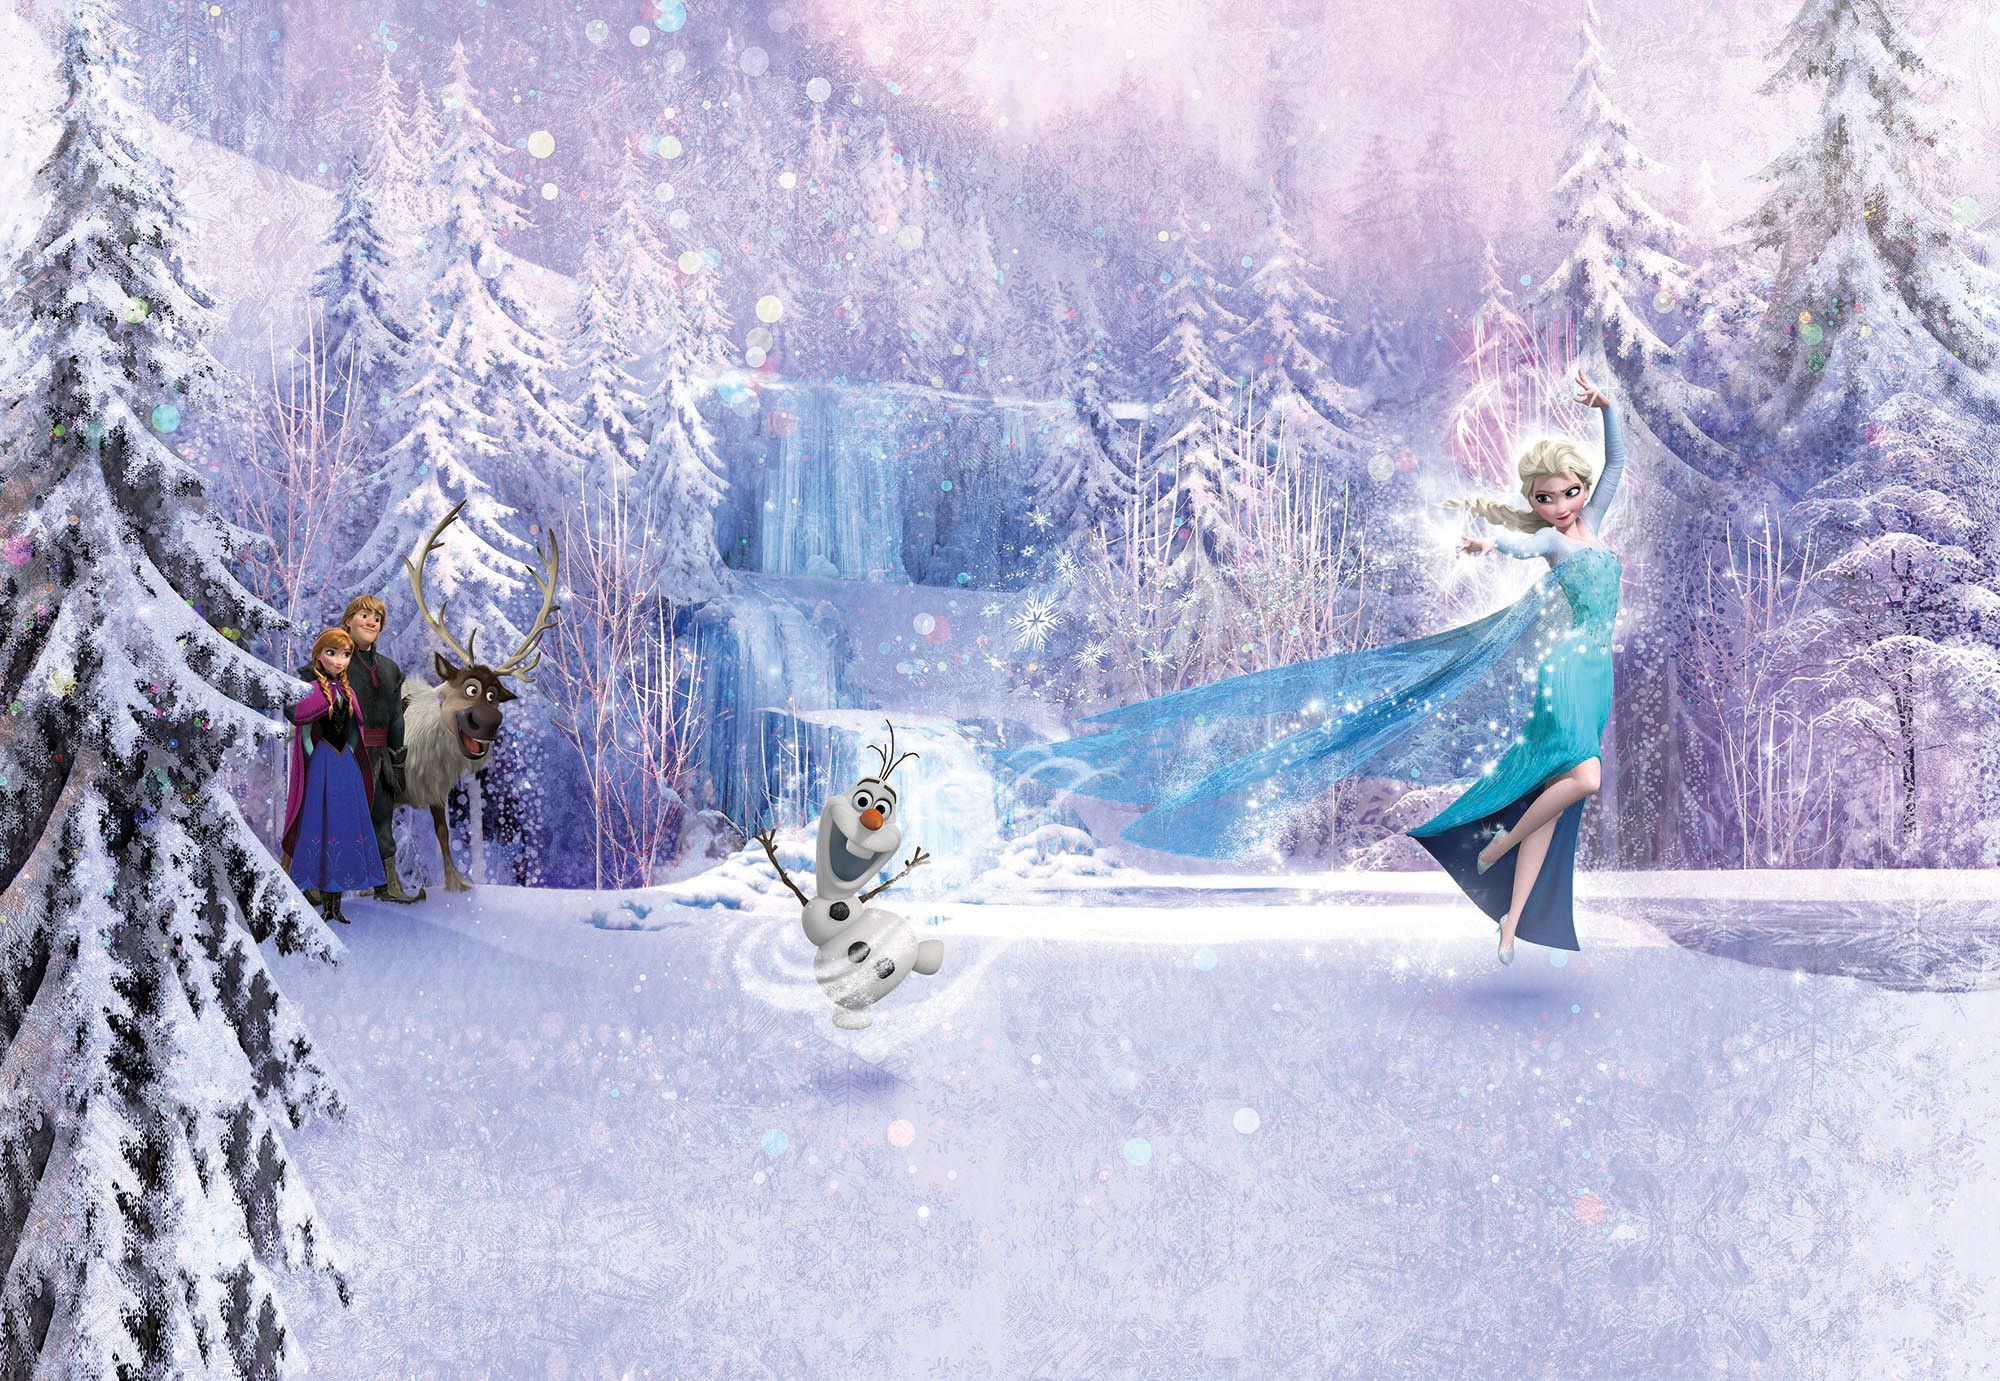 368x254cm giant wall mural photo wallpaper disney frozen for Mural wallpaper